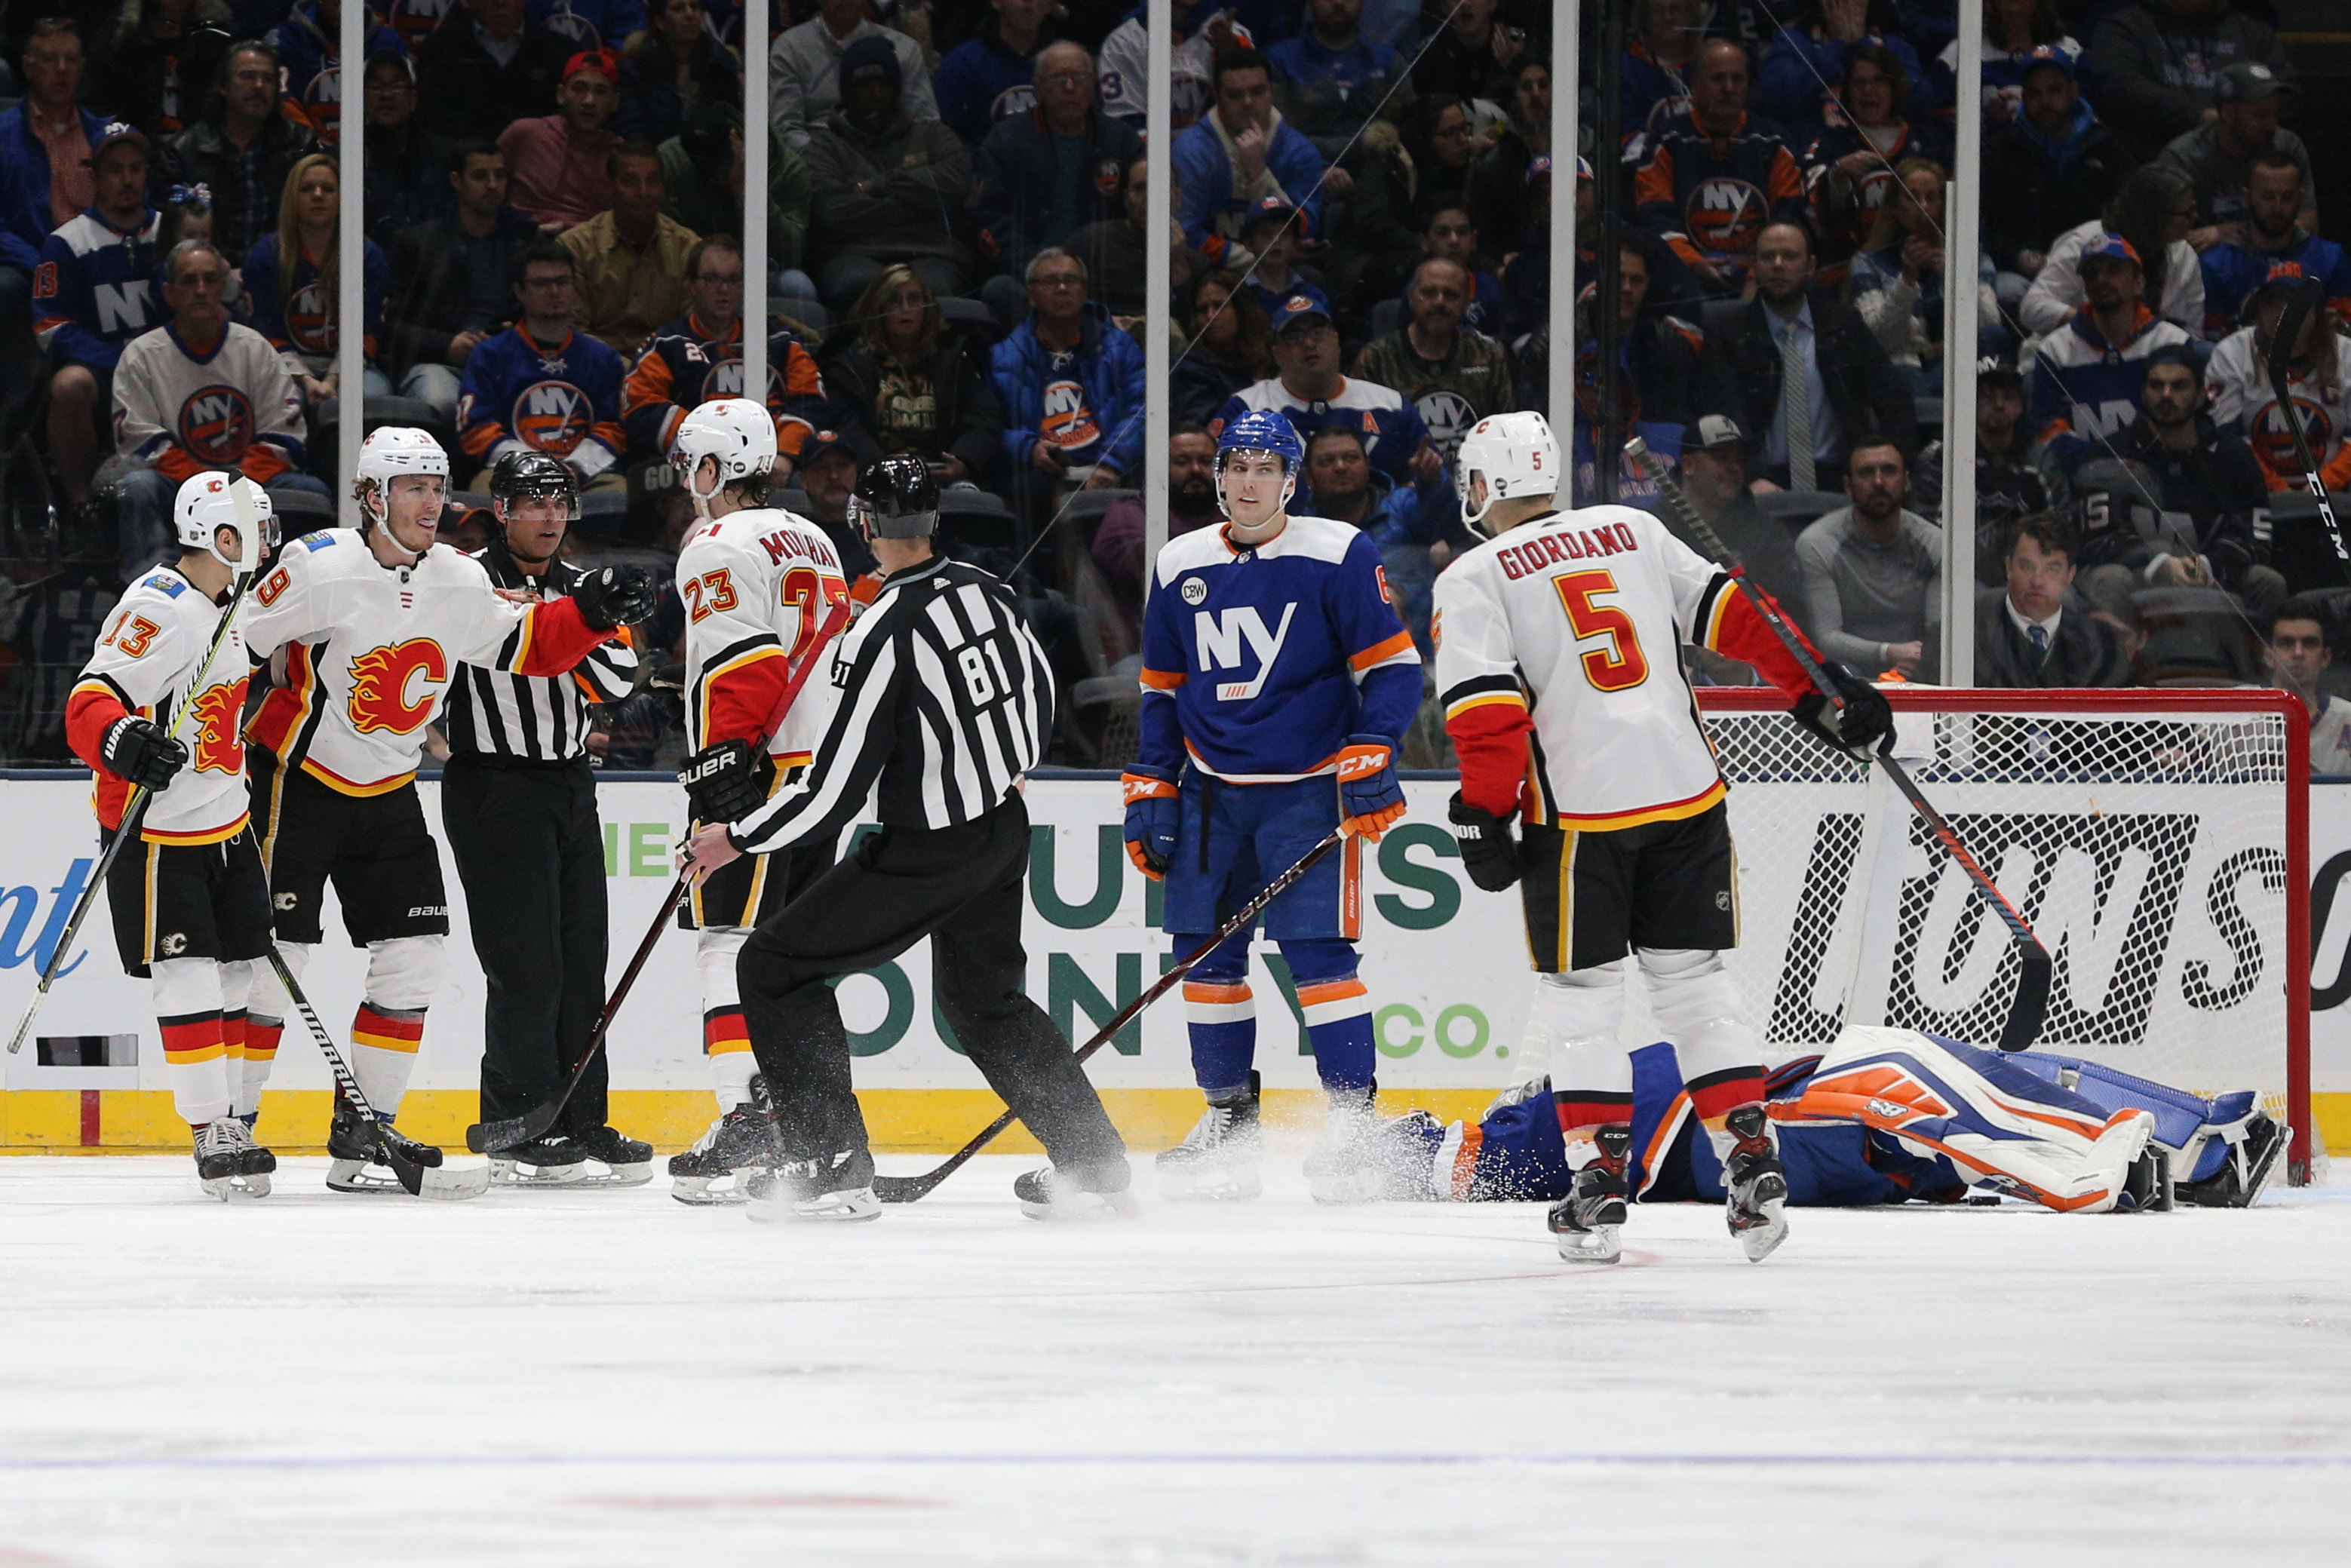 Feb 26, 2019; Uniondale, NY, USA; Calgary Flames left wing Matthew Tkachuk (19) celebrates after scoring a goal against New York Islanders goalie Robin Lehner (40) during the second period at Nassau Veterans Memorial Coliseum. Mandatory Credit: Brad Penner-USA TODAY Sports